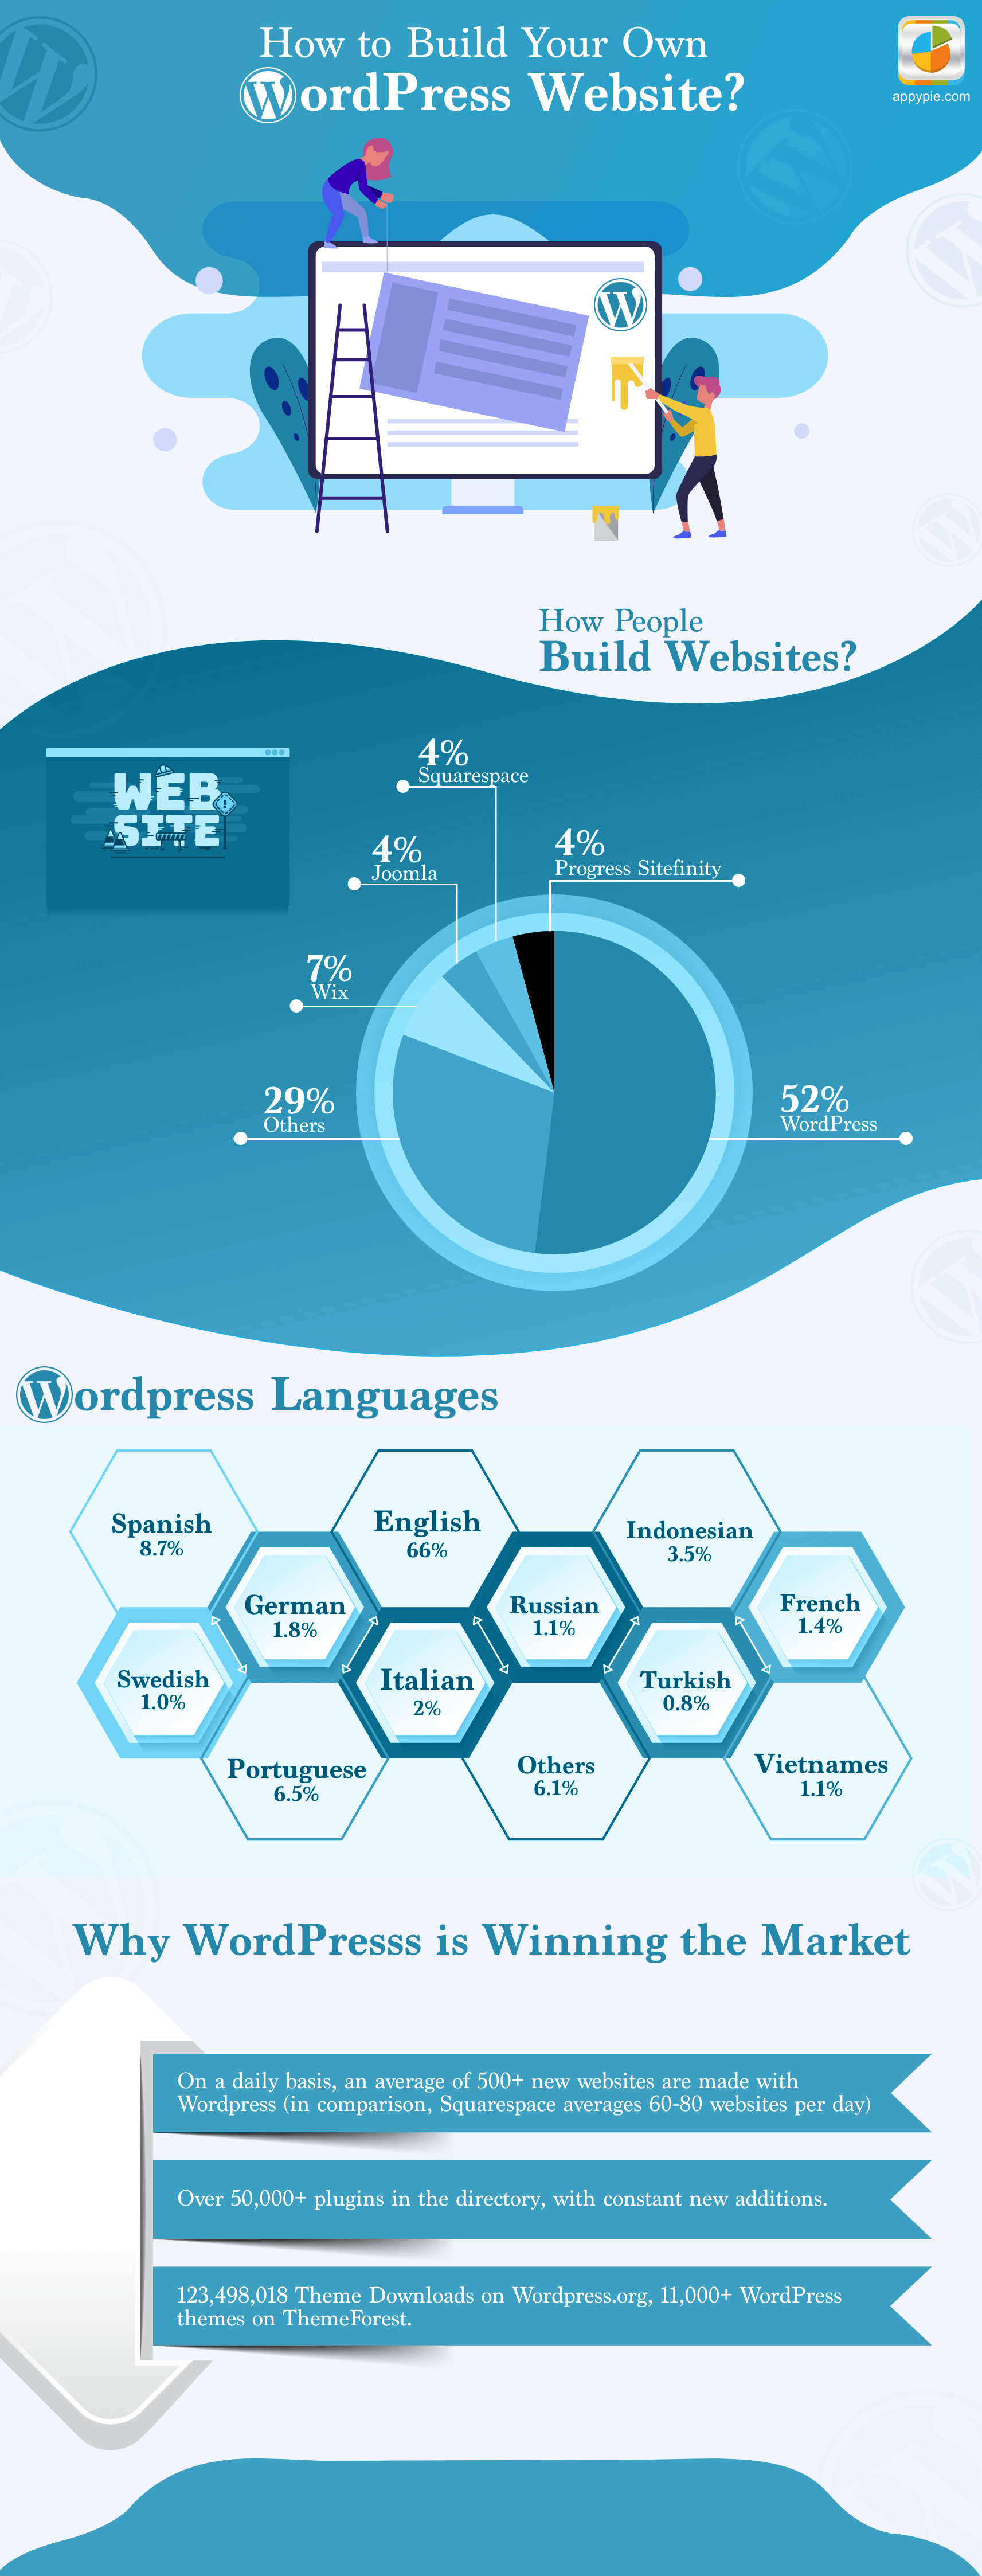 How to make a WordPress website for free?